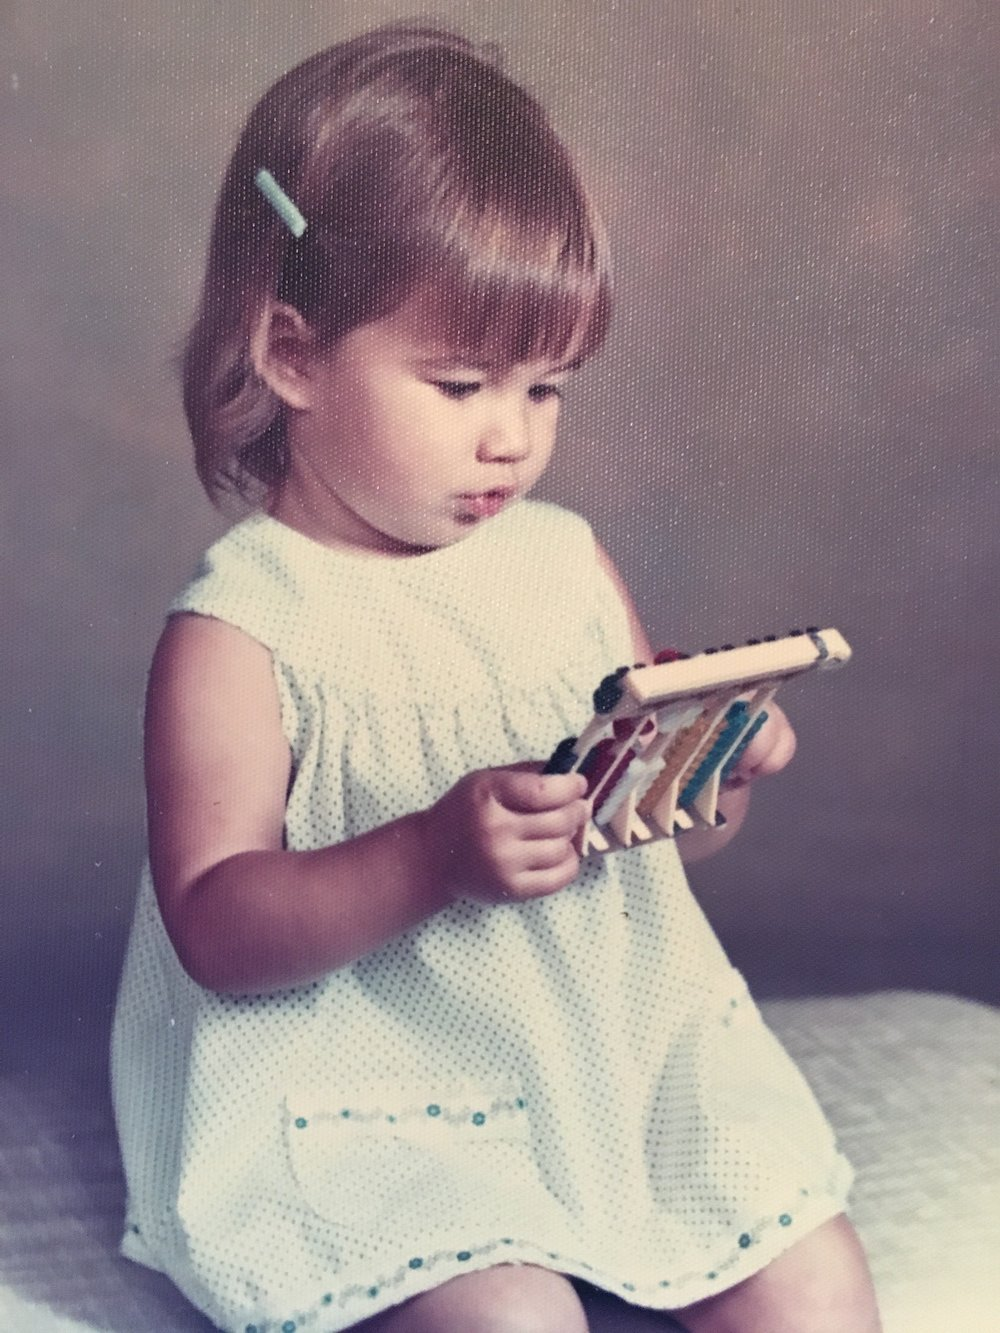 Early pic illustrating that math has never been one of my strong points. Who gives a kid an abacus as a prop anyway?